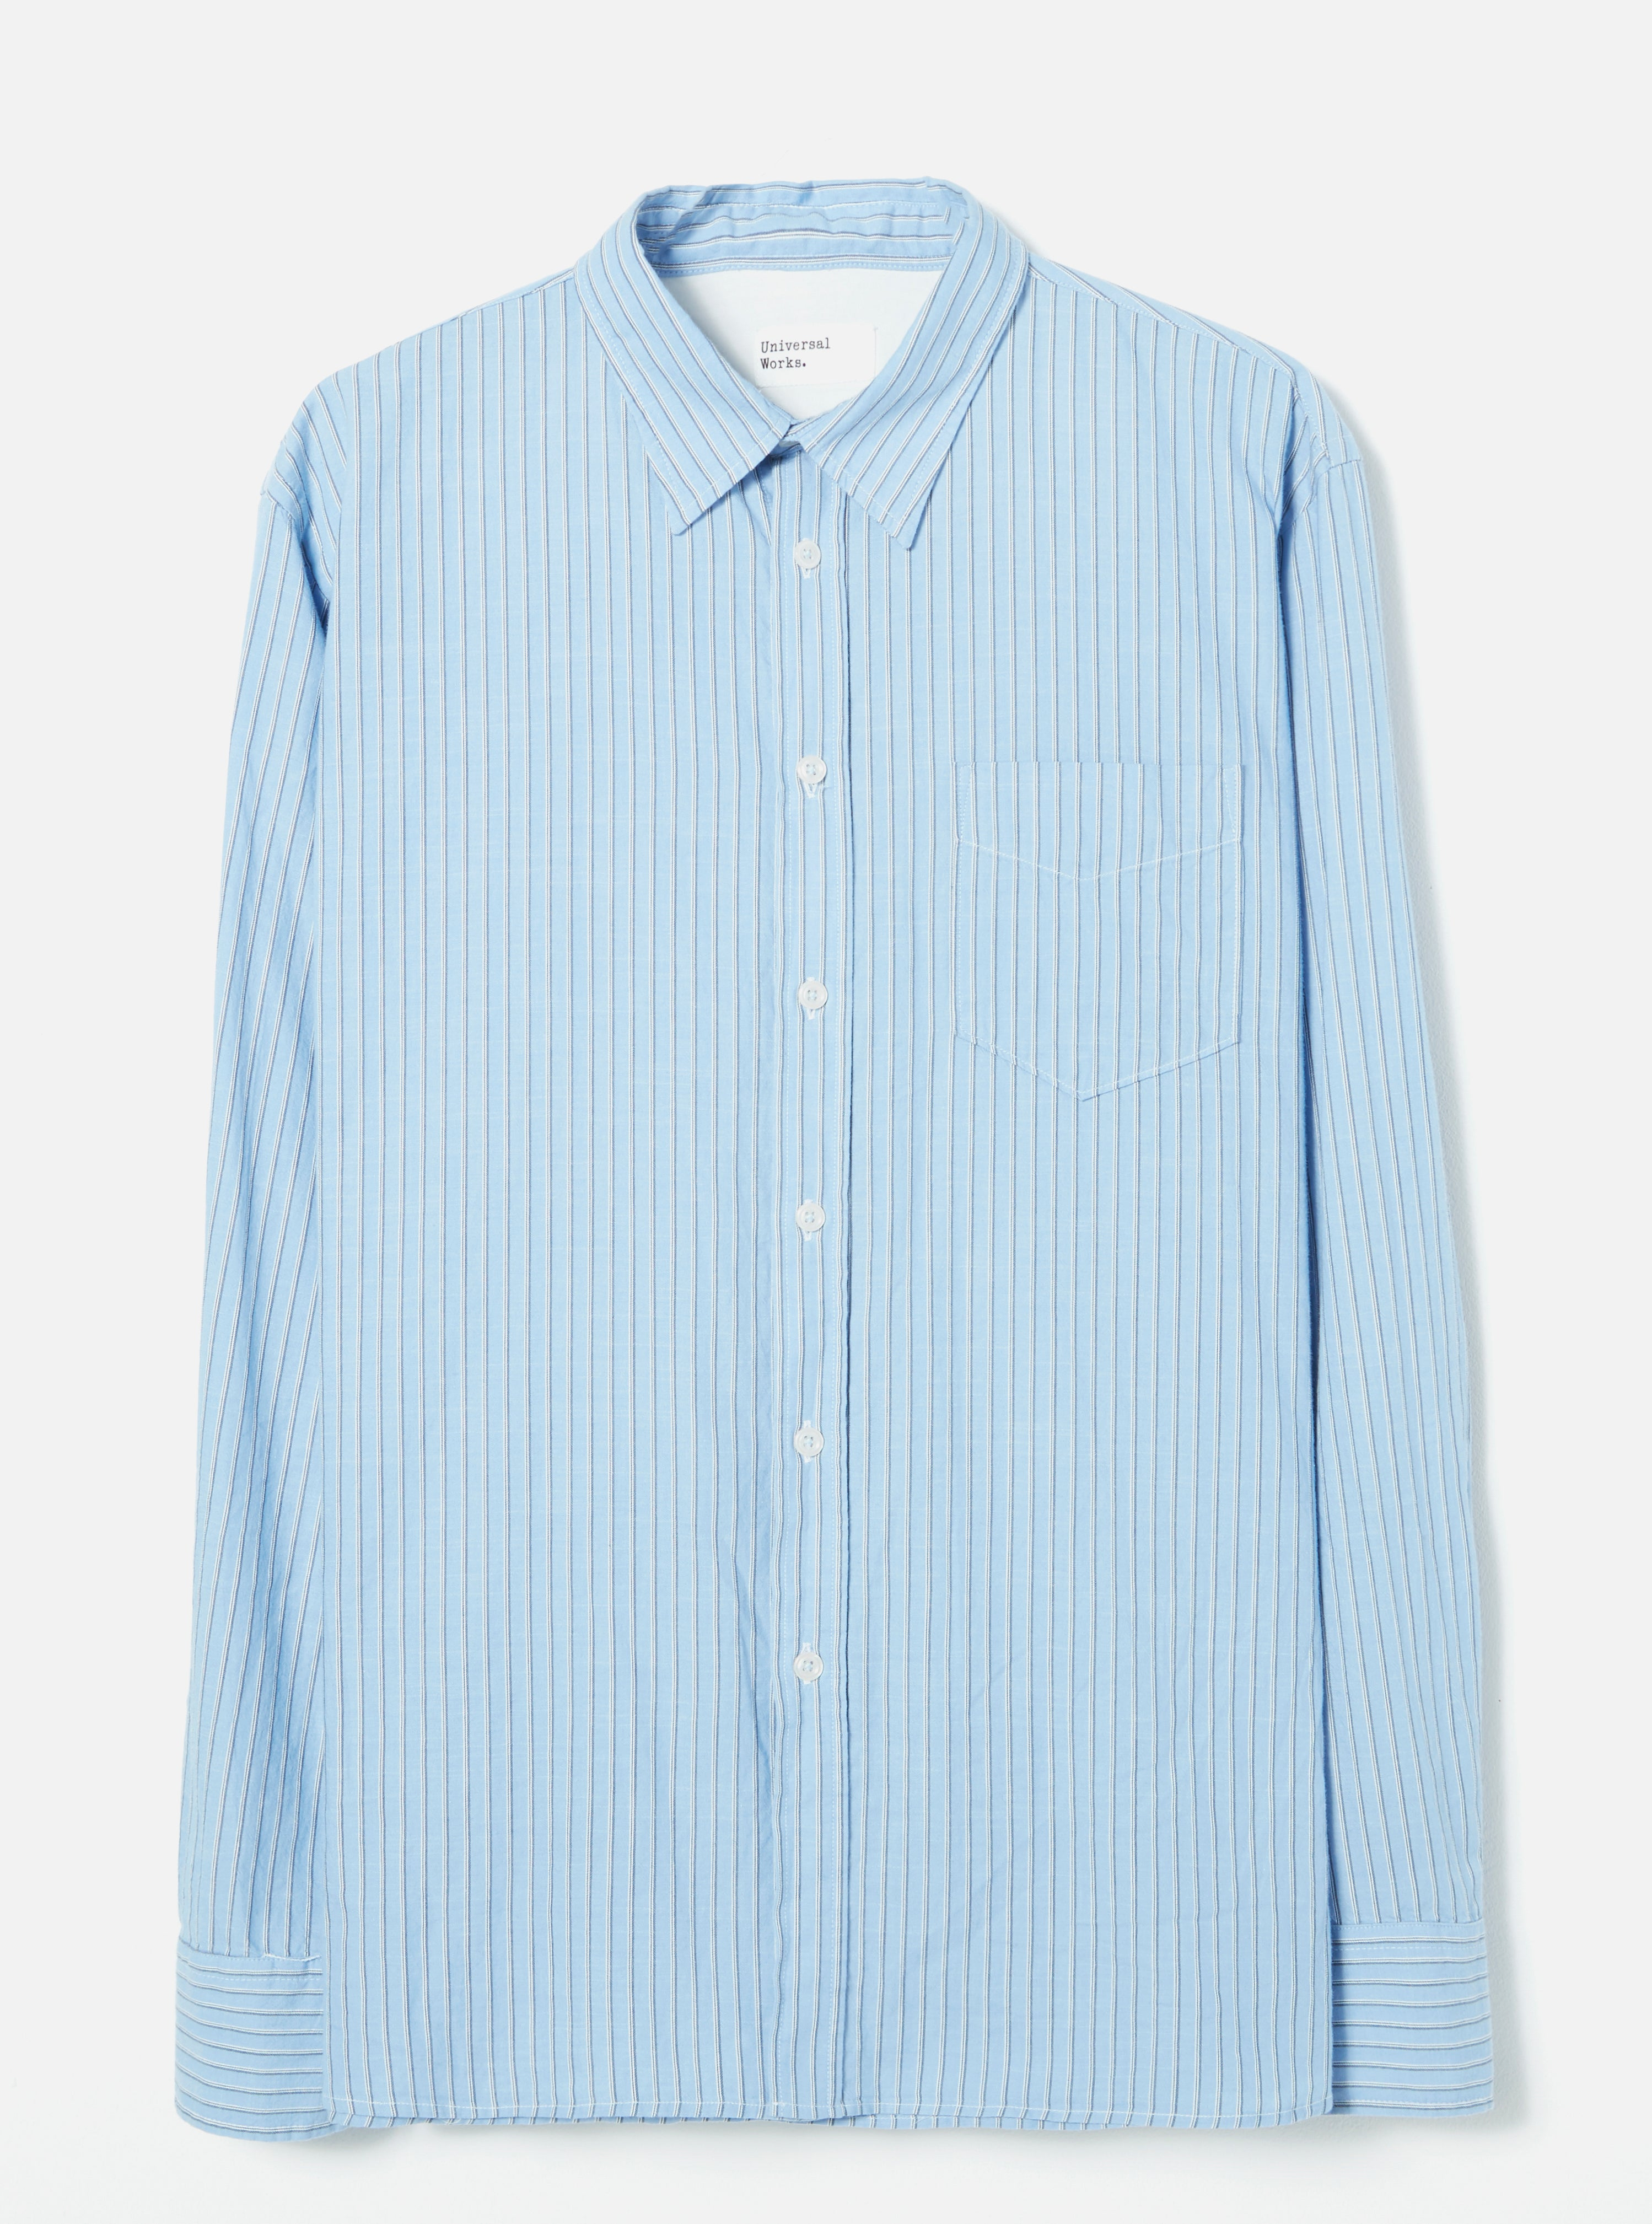 Universal Works New Standard Shirt in Blue City Stripe